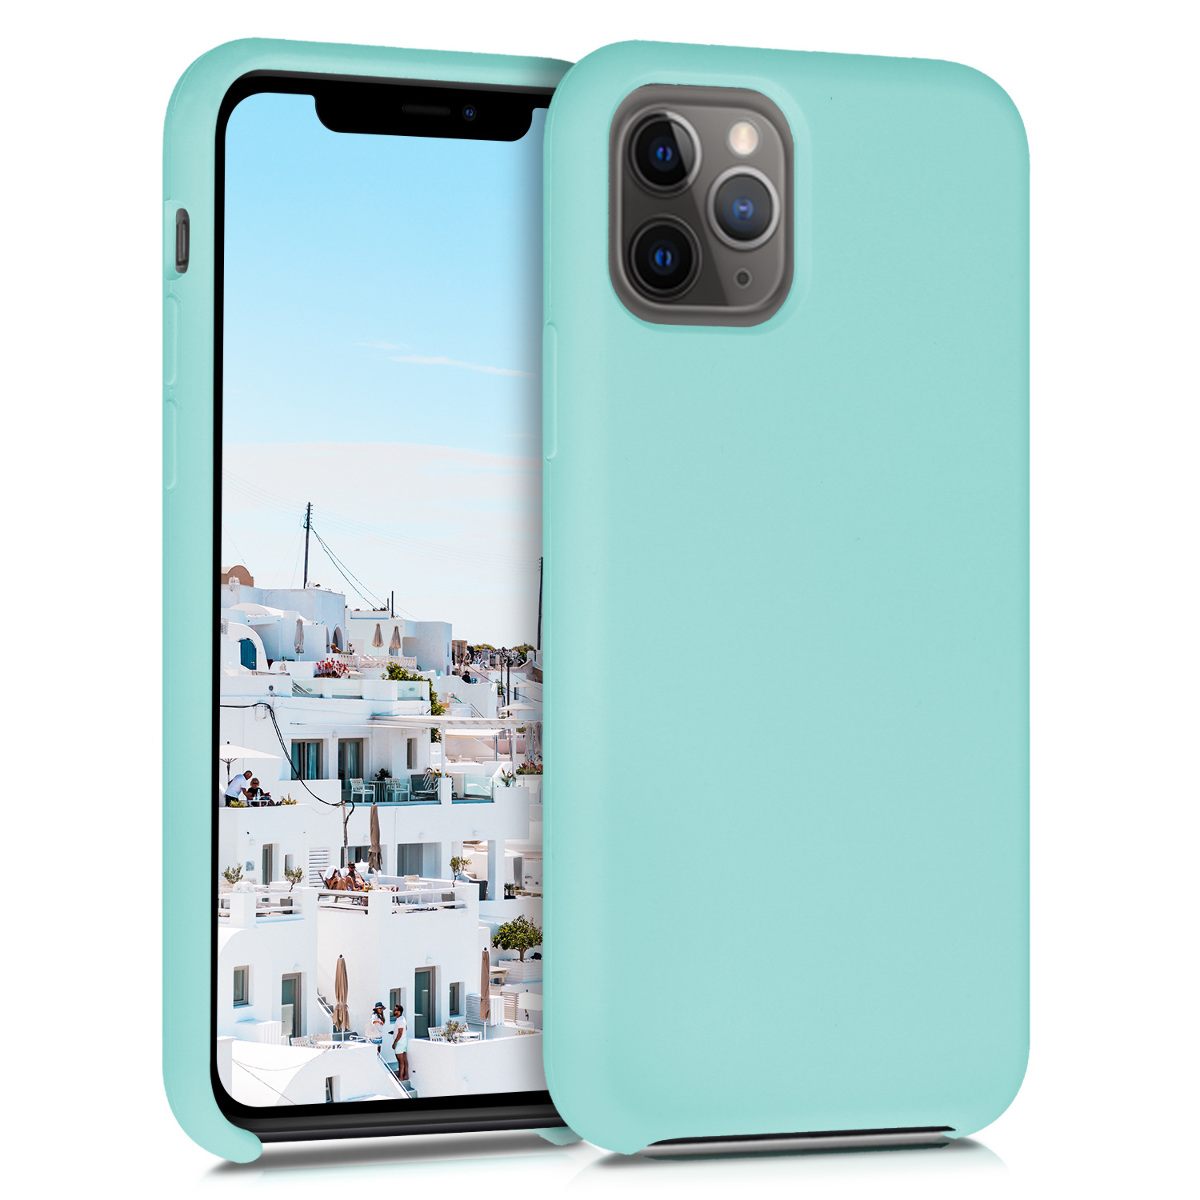 KW Θήκη Σιλικόνης iPhone 11 Pro Max - Soft Flexible Rubber Protective Cover - Mint Matte (49725.71)